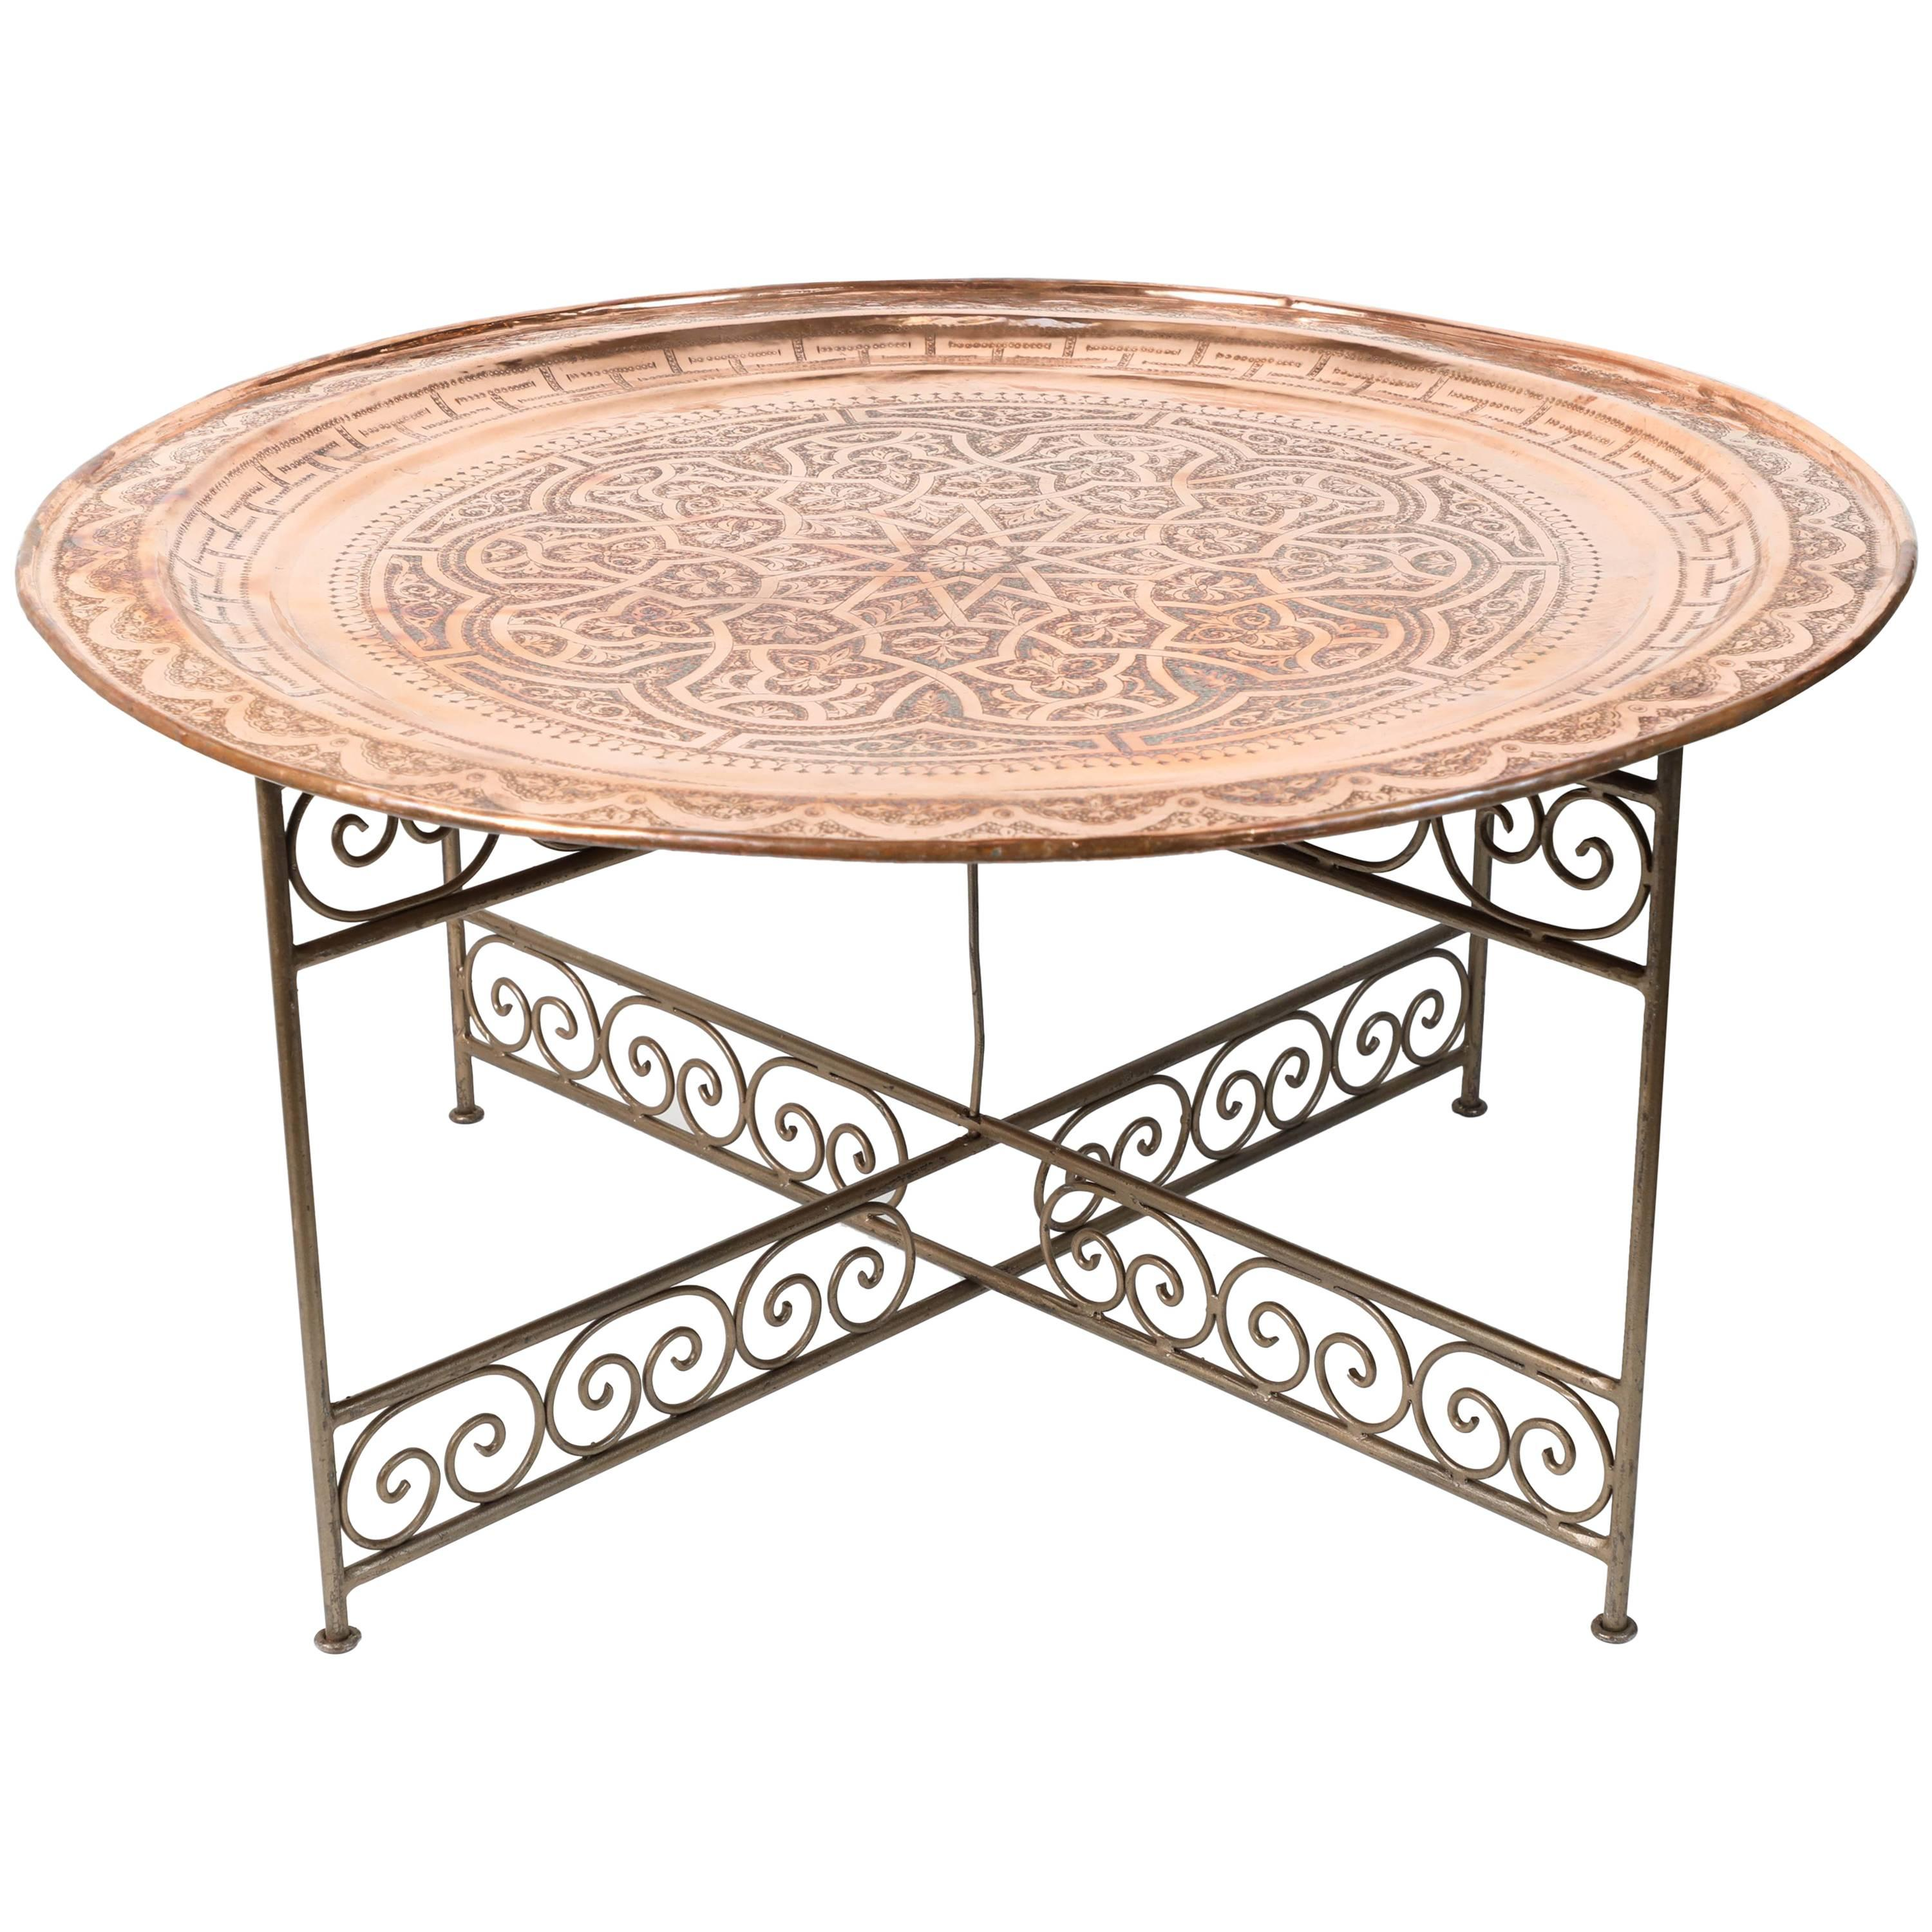 Charmant Moroccan Round Metal Tray Table On Iron Base For Sale